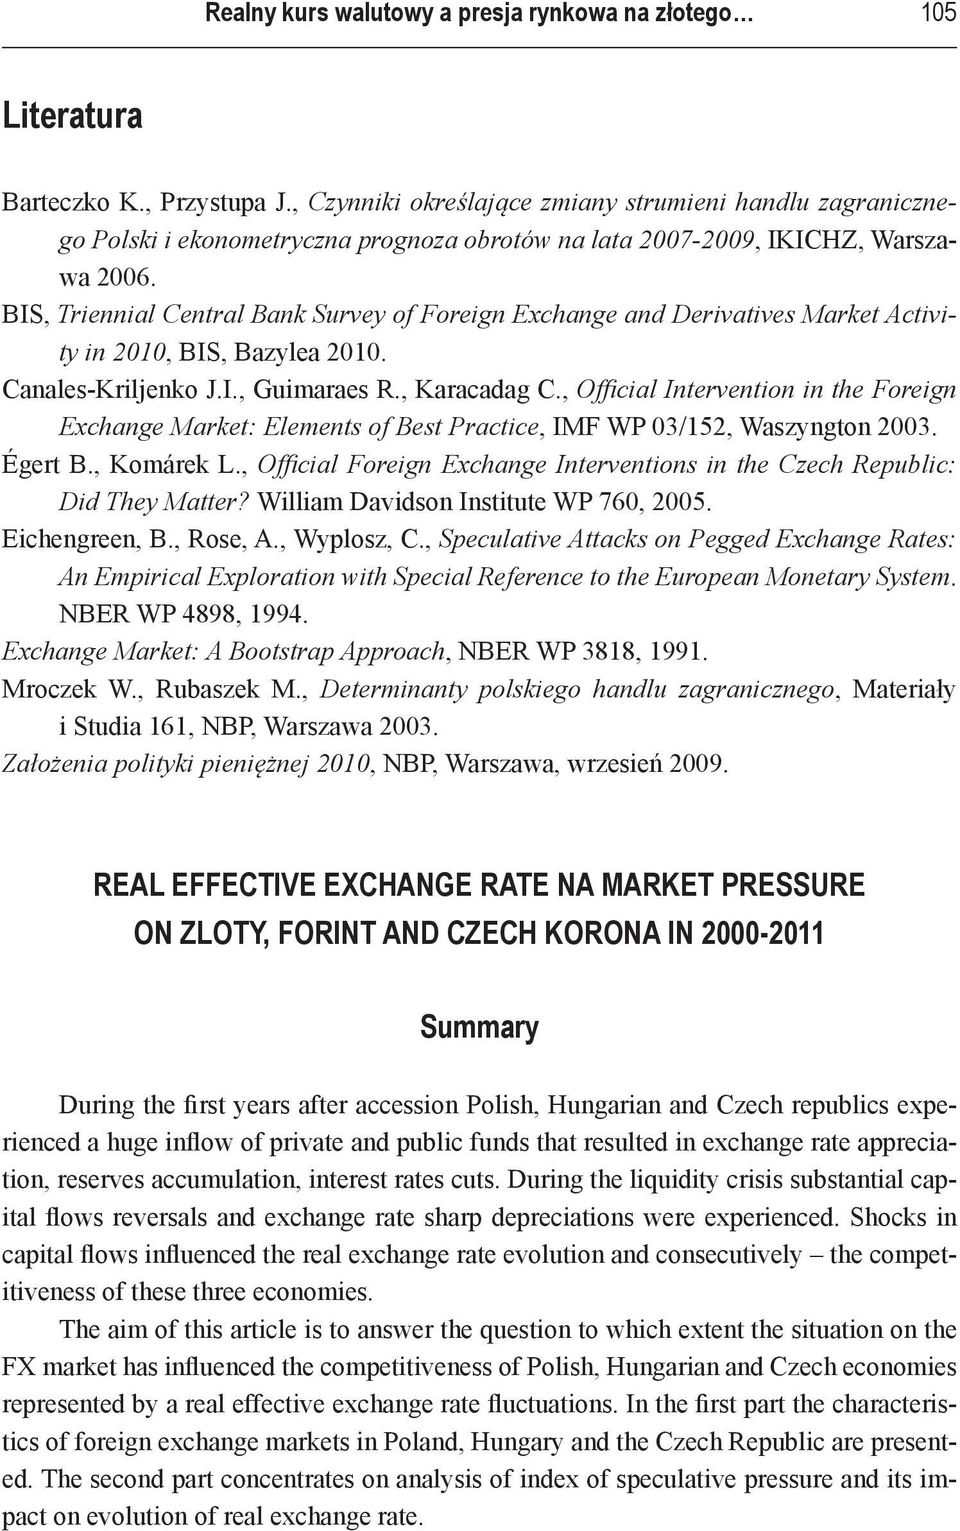 BIS, Triennial Central Bank Survey of Foreign Exchange and Derivatives Market Activity in 2010, BIS, Bazylea 2010. Canales Kriljenko J.I., Guimaraes R., Karacadag C.